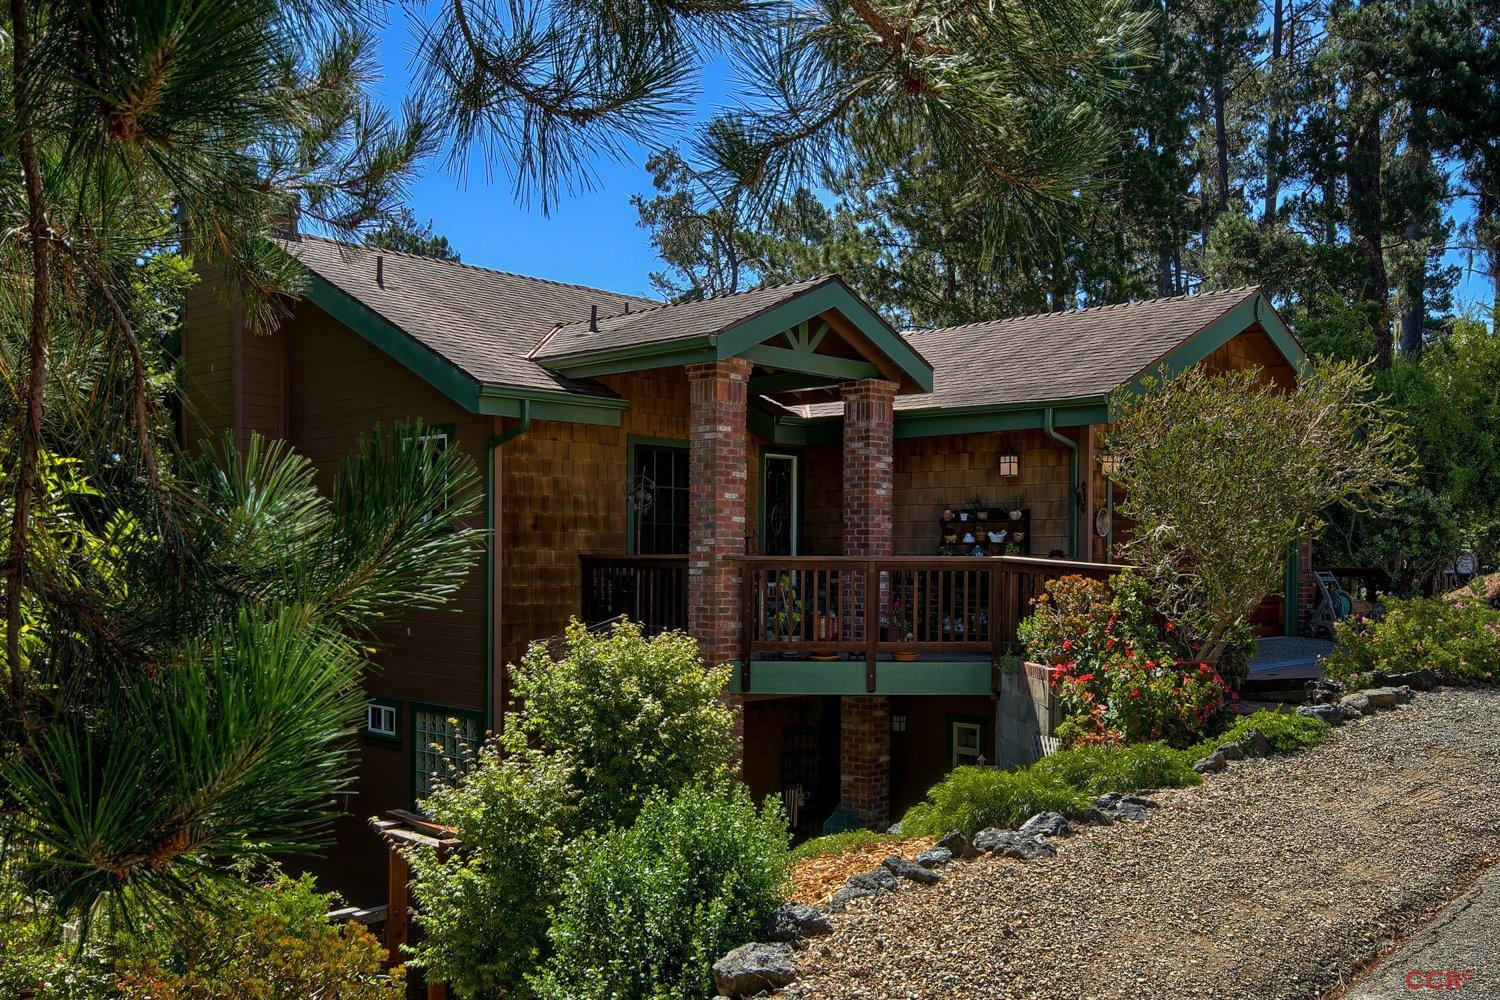 1910 Pineridge Dr, Cambria, CA 93428